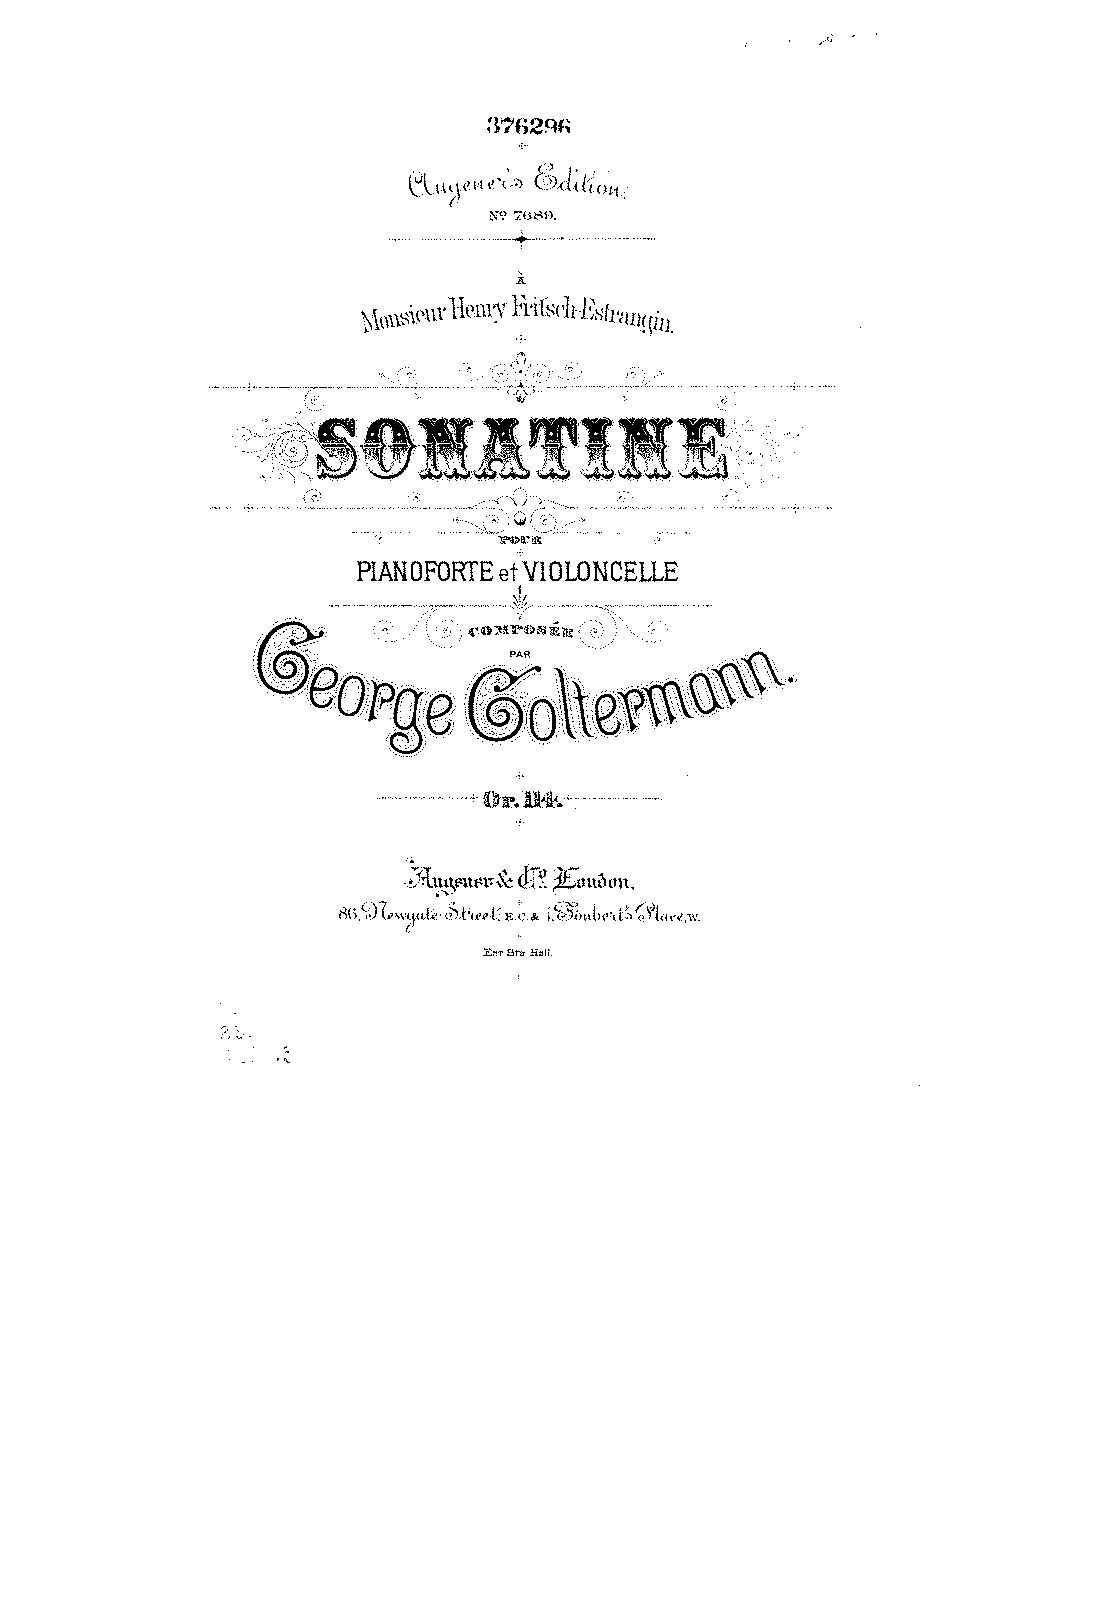 PMLP135118-Goltermann - Sonatine for Cello and Piano Op114 score.pdf